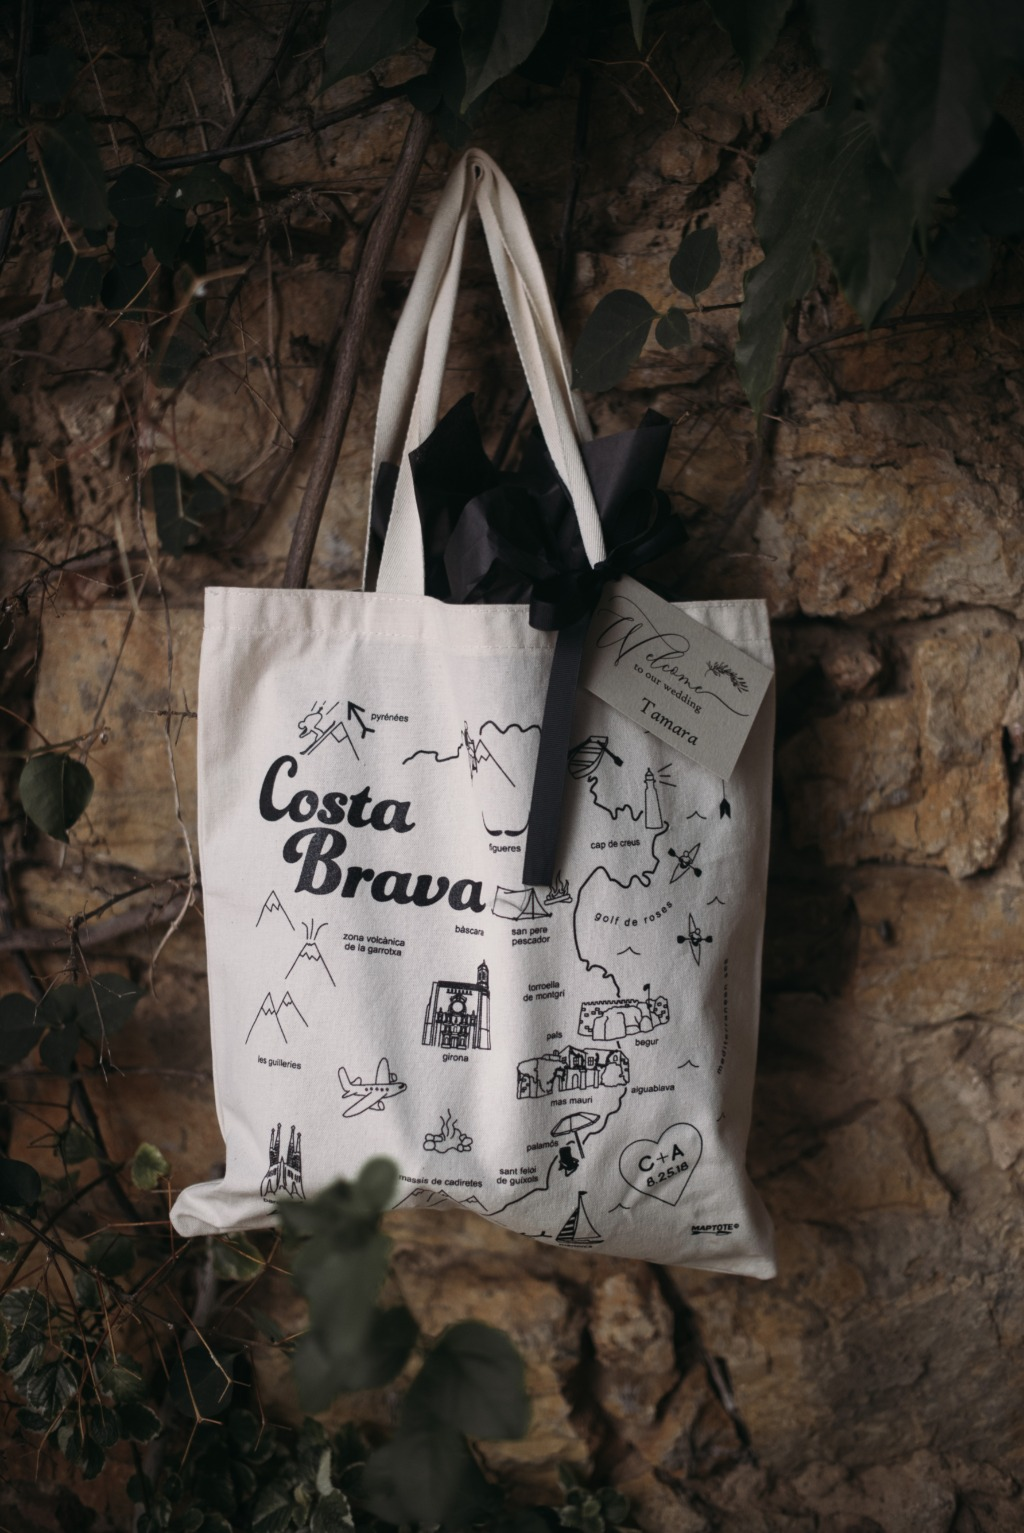 Learn more about creating a custom wedding tote for your destination wedding. We loved making this custom Costa Brava tote that celebrated